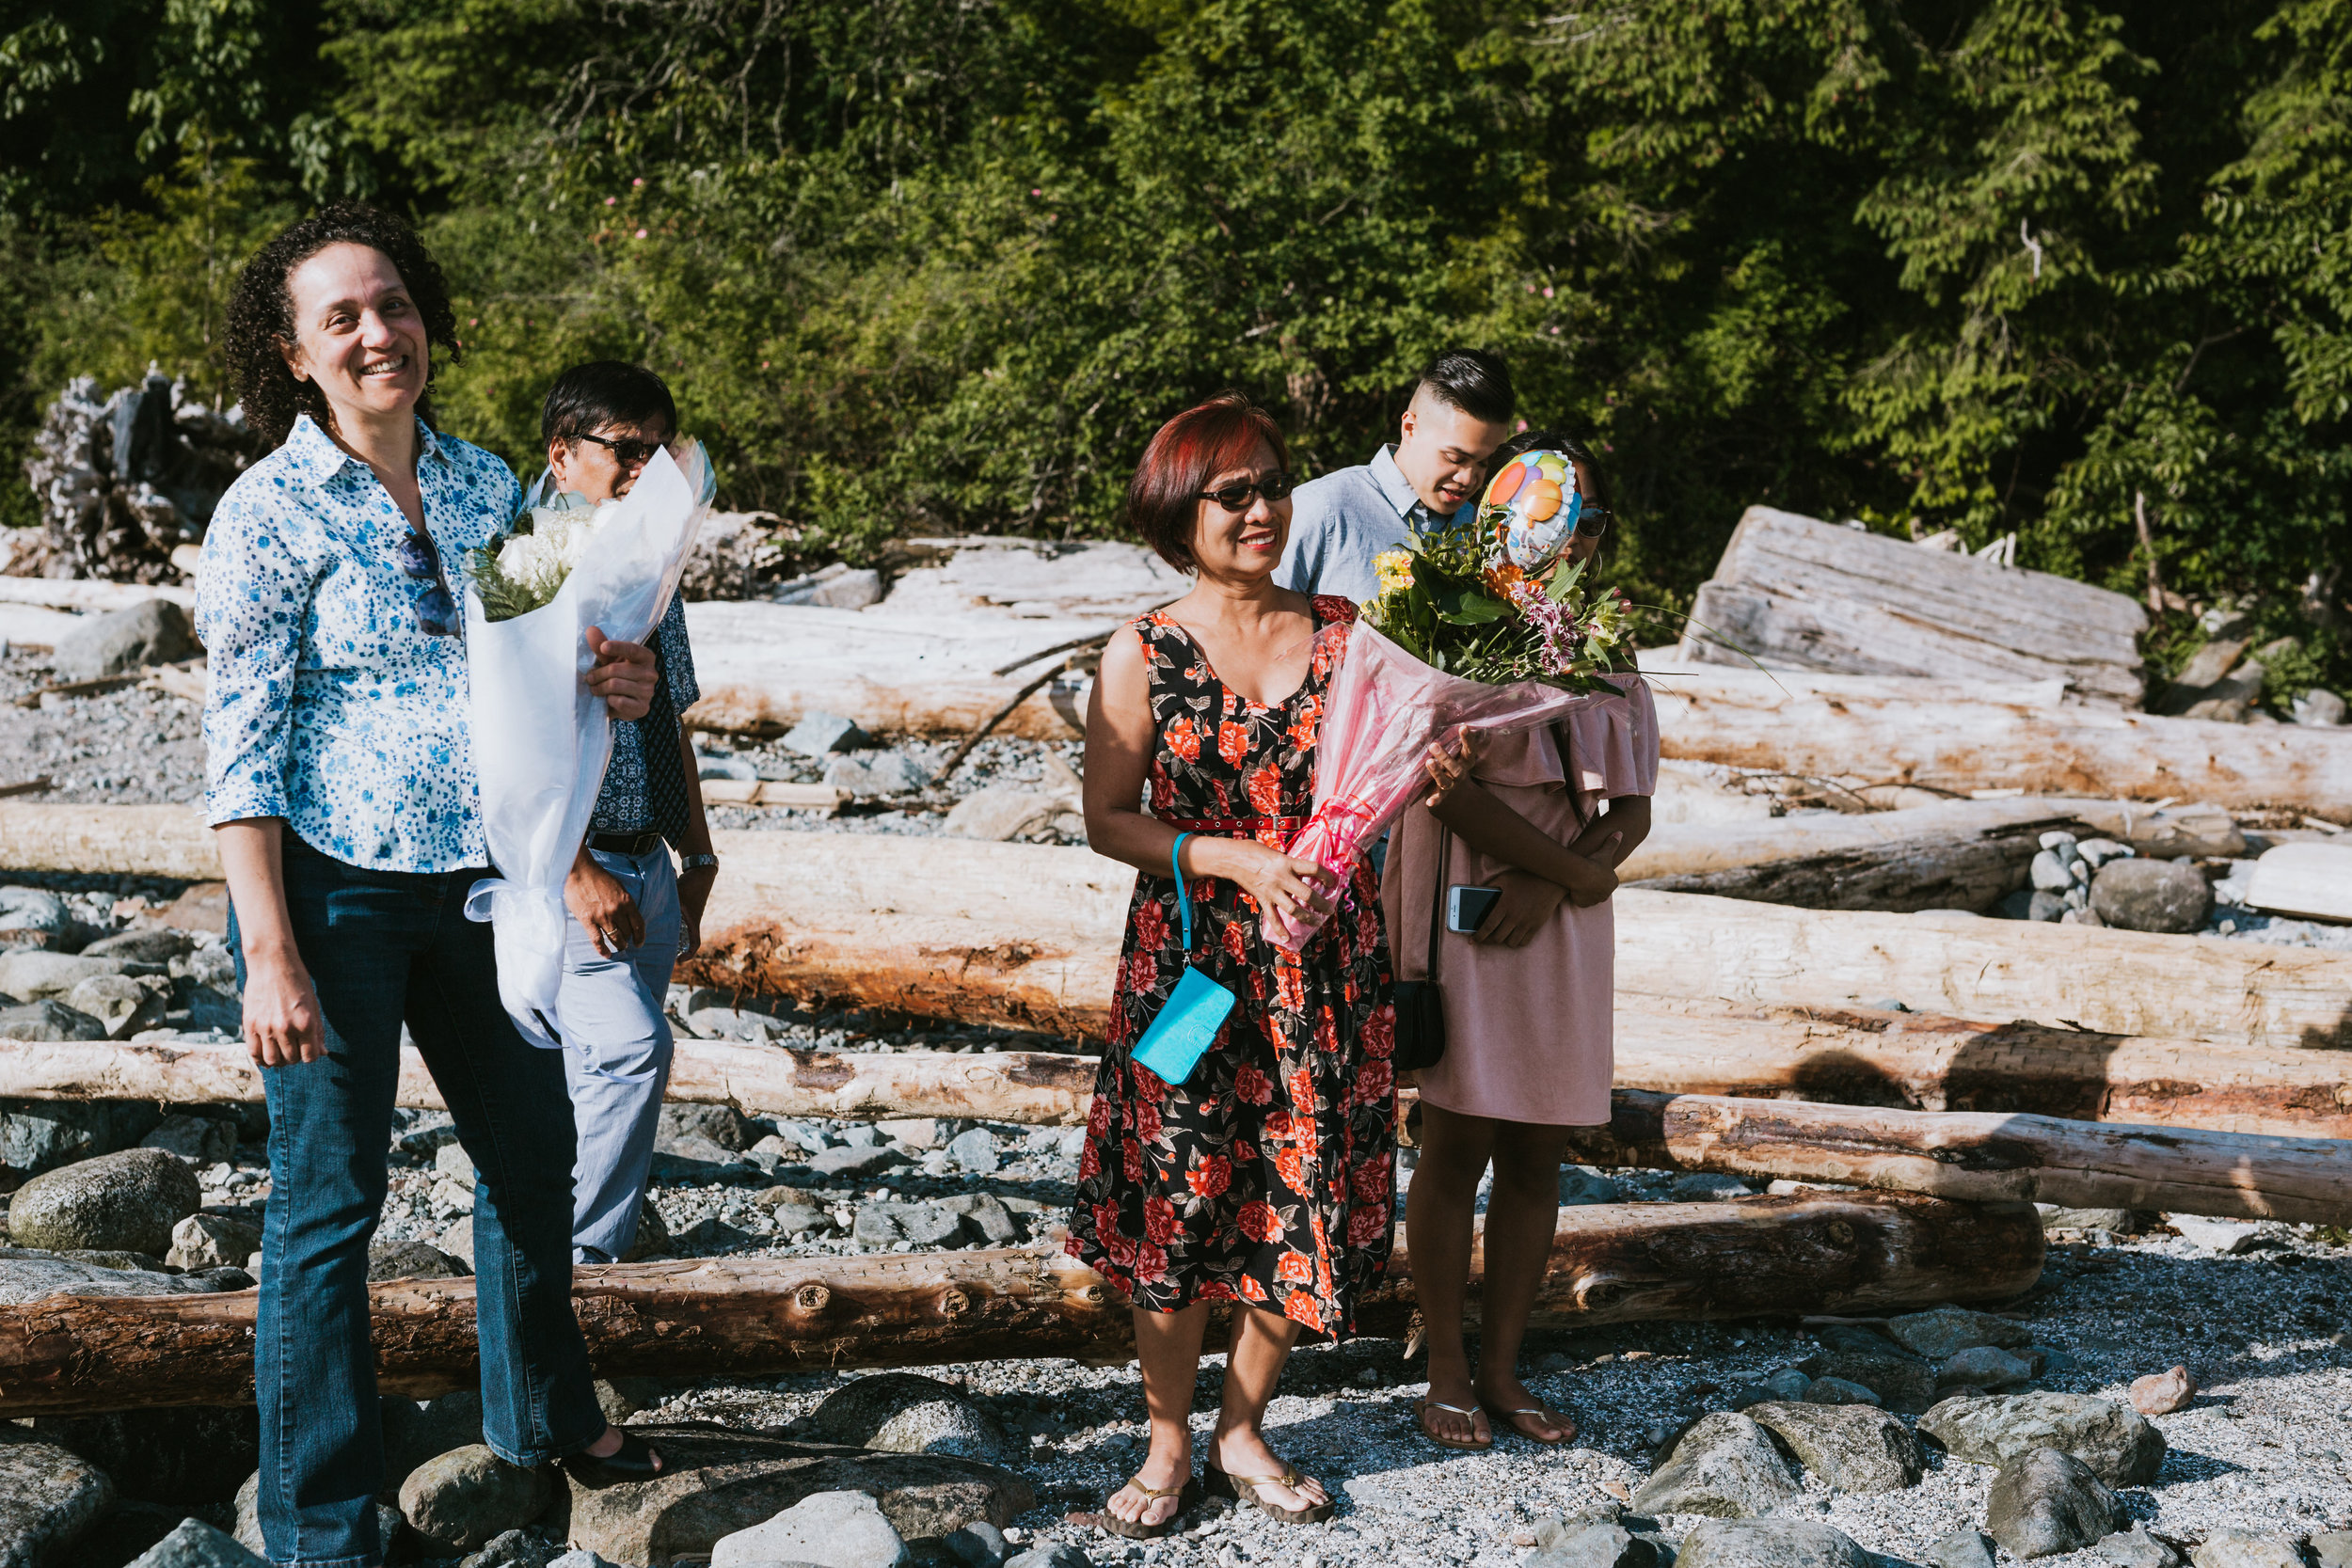 oliver-rabanes-vancouver-surrey-whytecliff-park-proposal-engagement-photography-11.JPG